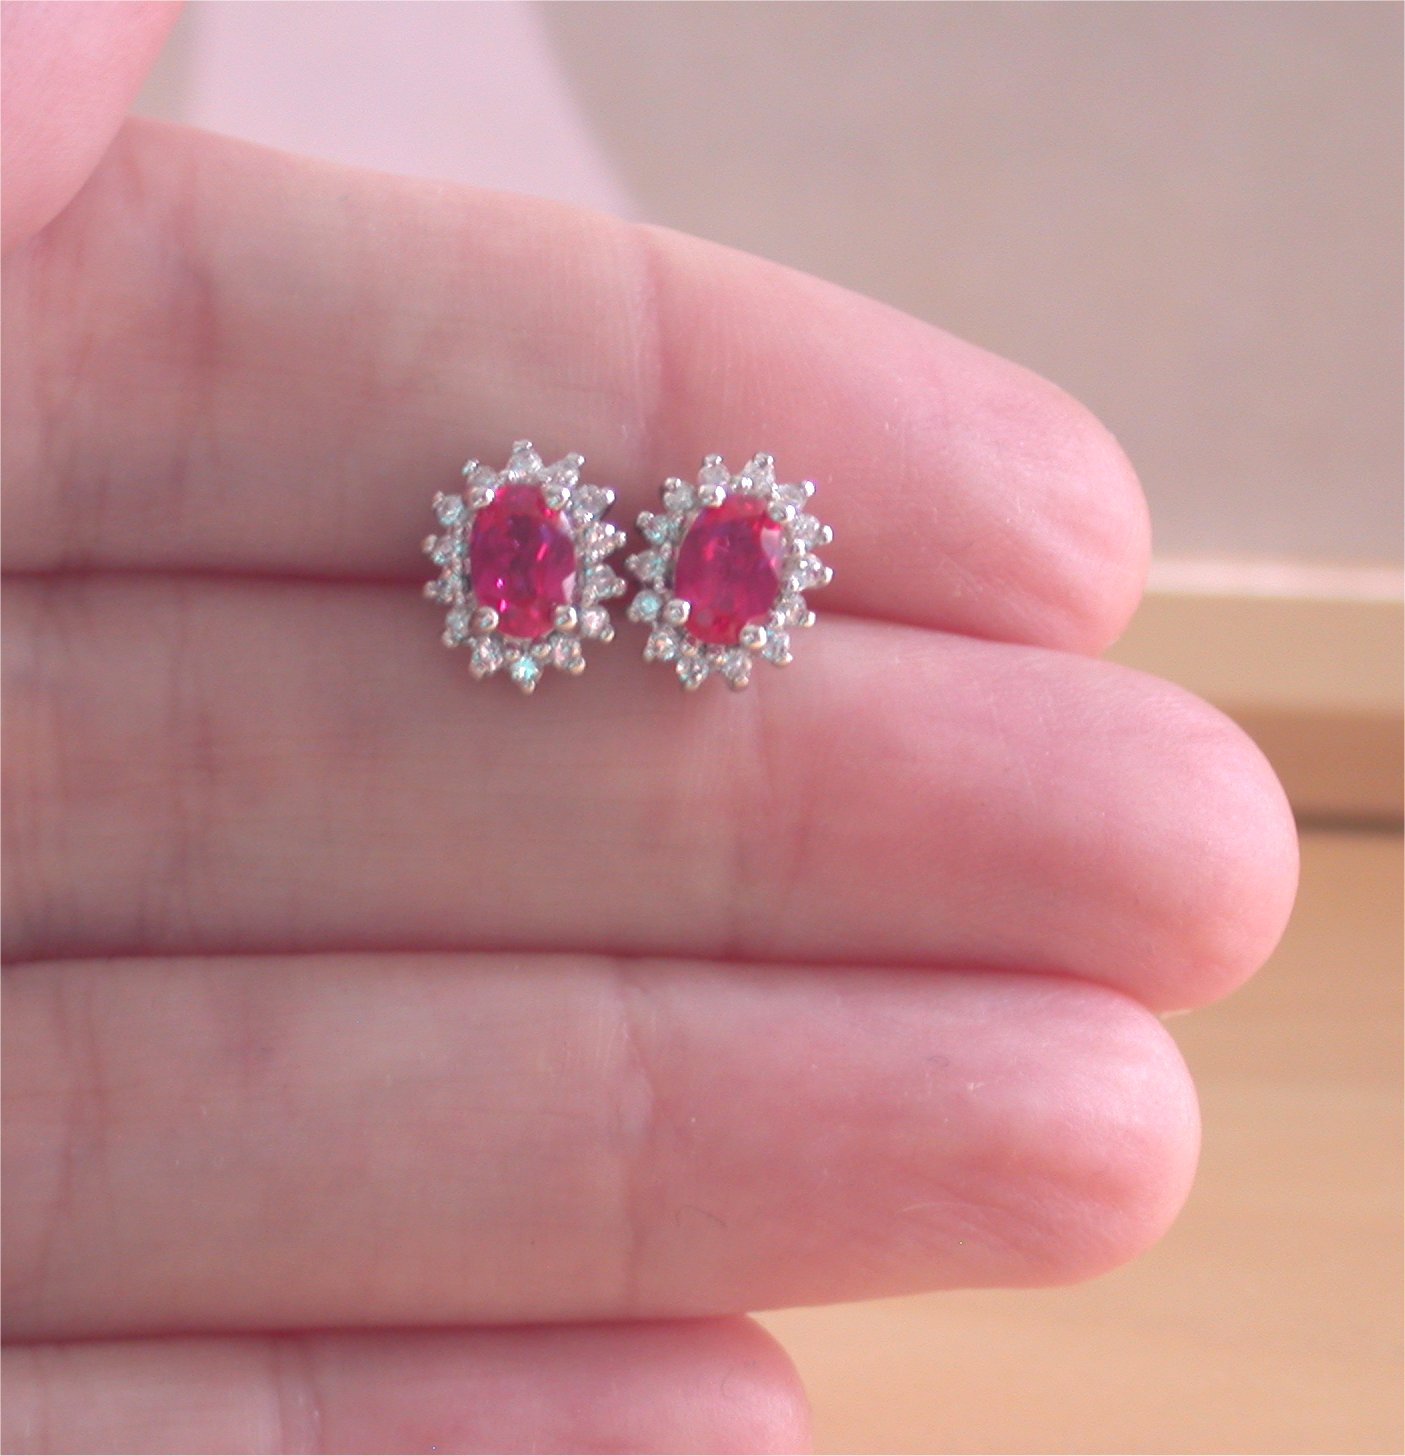 afghan lost embrace and with cope ruby jewellery product optimal love to earrings